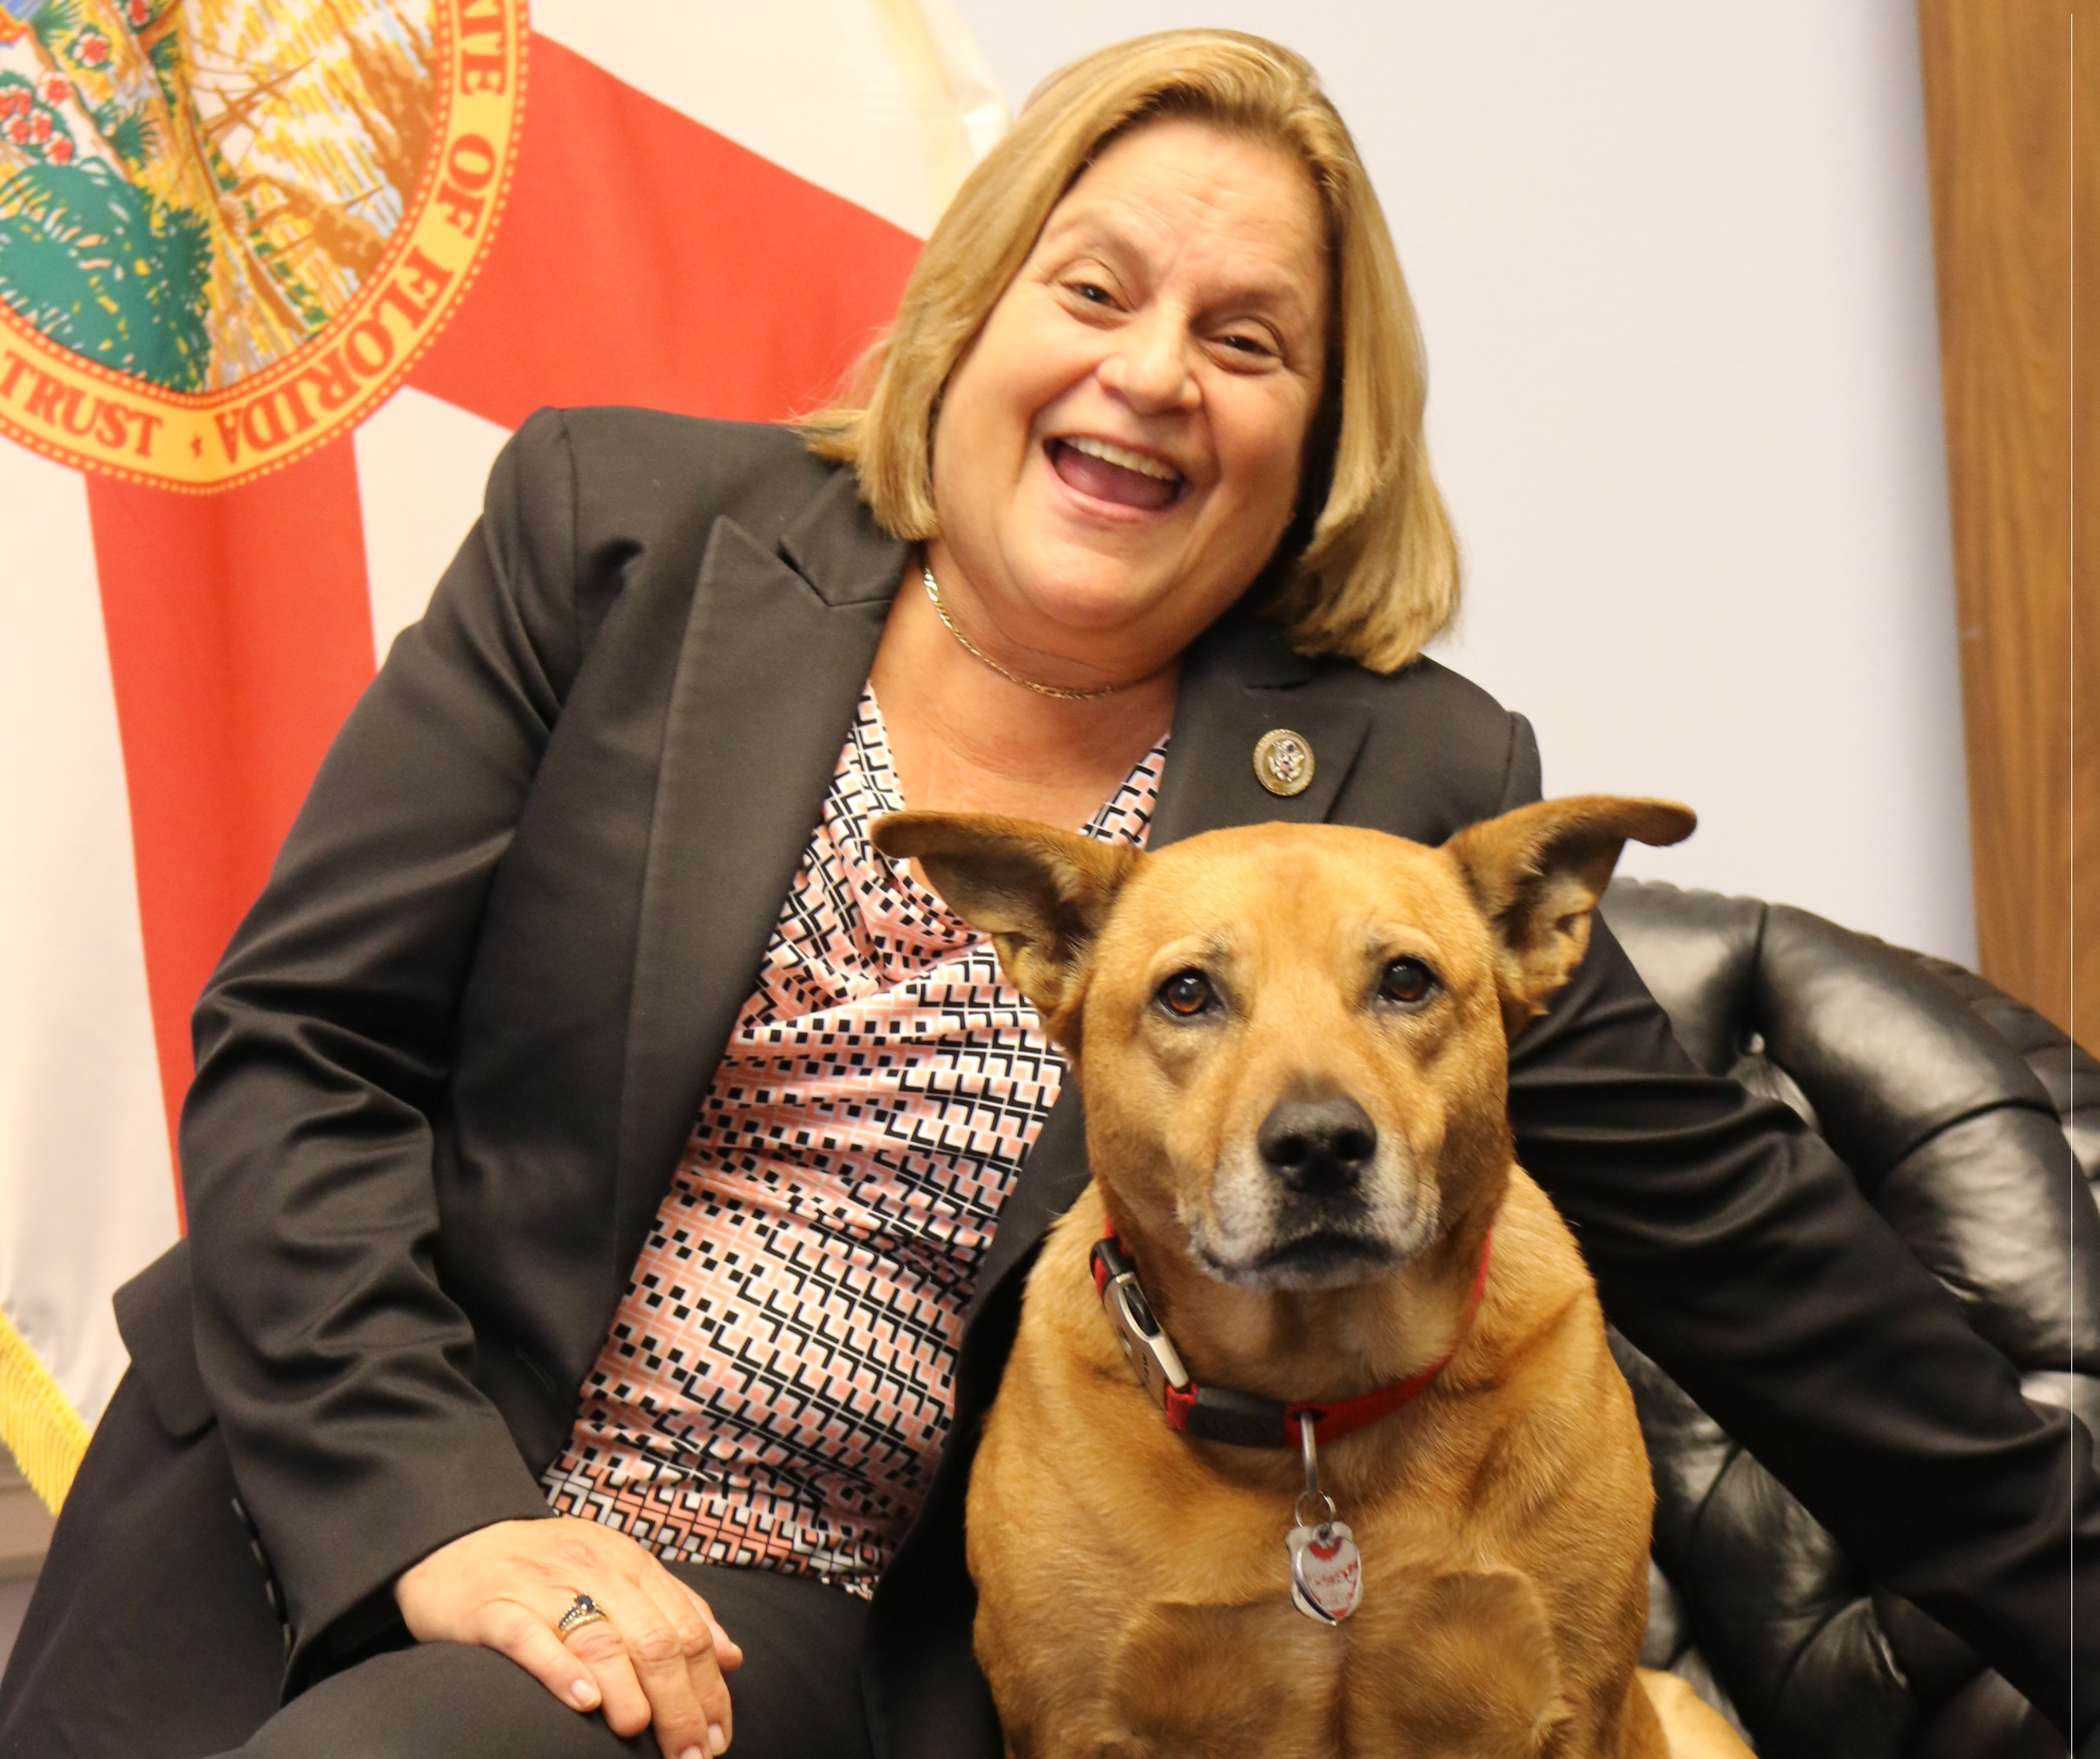 "Maya has been the office dog in Florida Rep. <a class=""memberLink"" title=""Click to view member info in a new window"" href=""http://data.rollcall.com/members/119?rel=memberLink"" target=""_blank"">Ileana Ros-Lehtinen</a>'s office since 2008. (Courtesy Ros-Lehtien's office)"